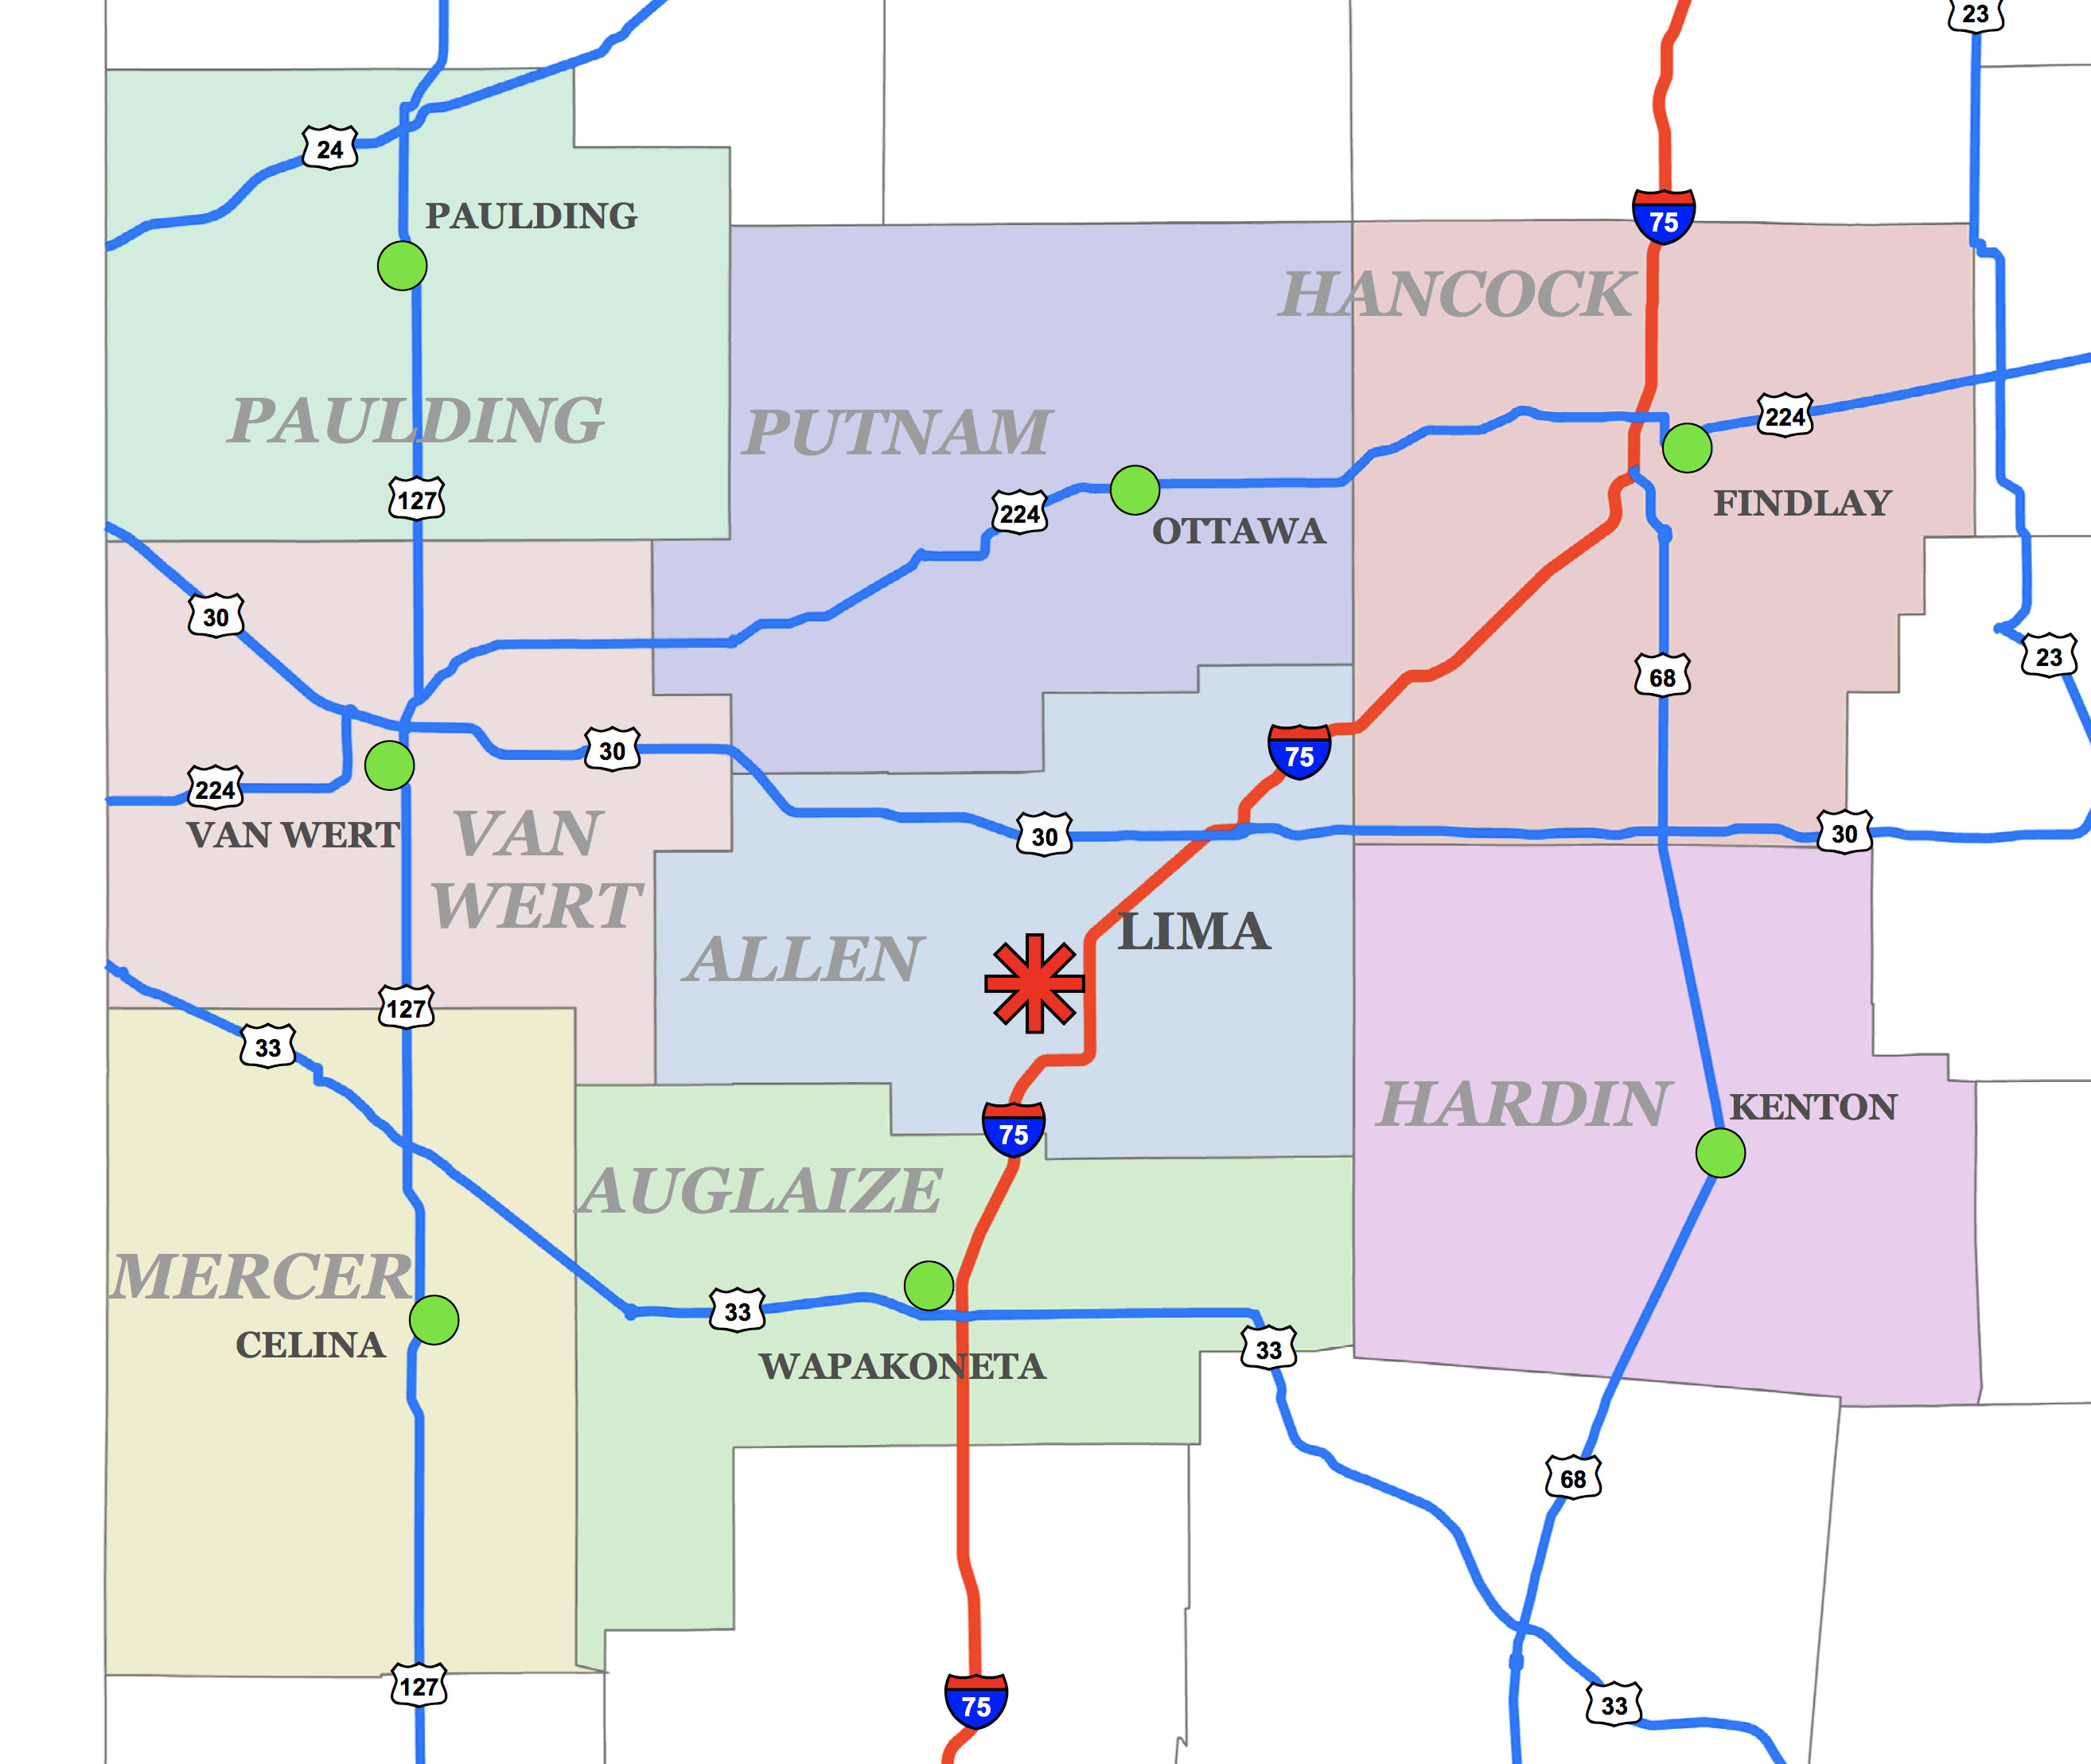 CLICK TO VIEW DATA on hwy 90 map, national highway system map, united states interstate and highway map, i-70 highway map, interstate highway system, i-35 highway map, interstate 40 map, interstate 27 highway map, interstate 80 highway map, interstate 71 highway map, interstate 55 highway map, pa interstate highway map, interstate 95 highway map, interstate 10 highway map, interstate 75 highway map, interstate 81 highway map, eastern interstate highway map, interstate 70 map, us interstate highway map, i-75 highway map,